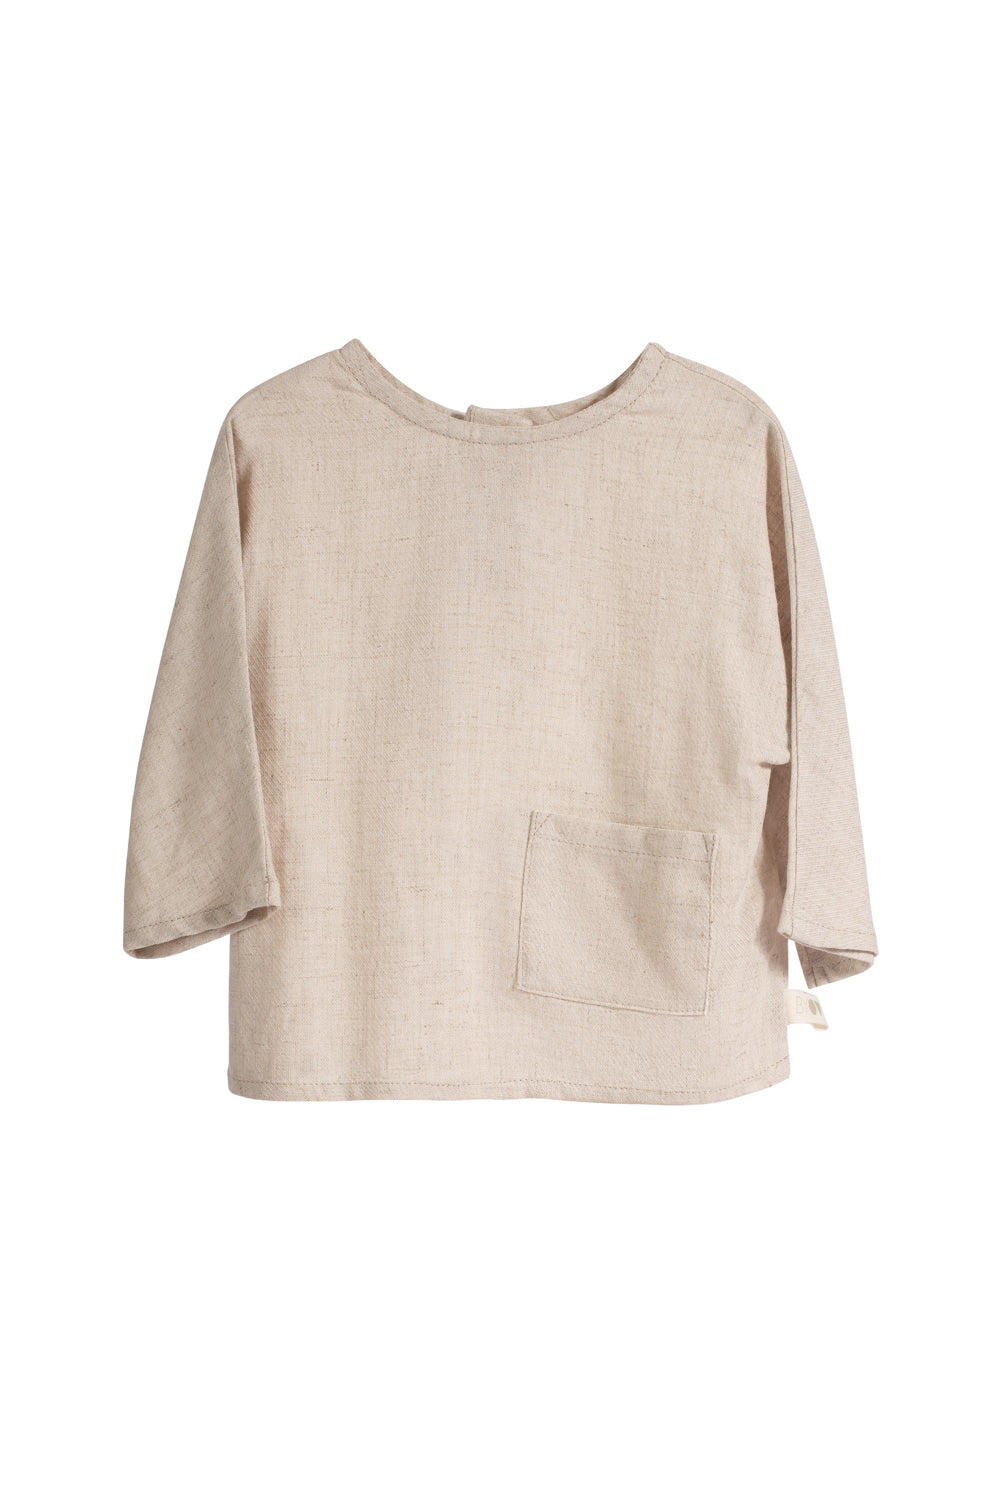 Nature | linen sweater